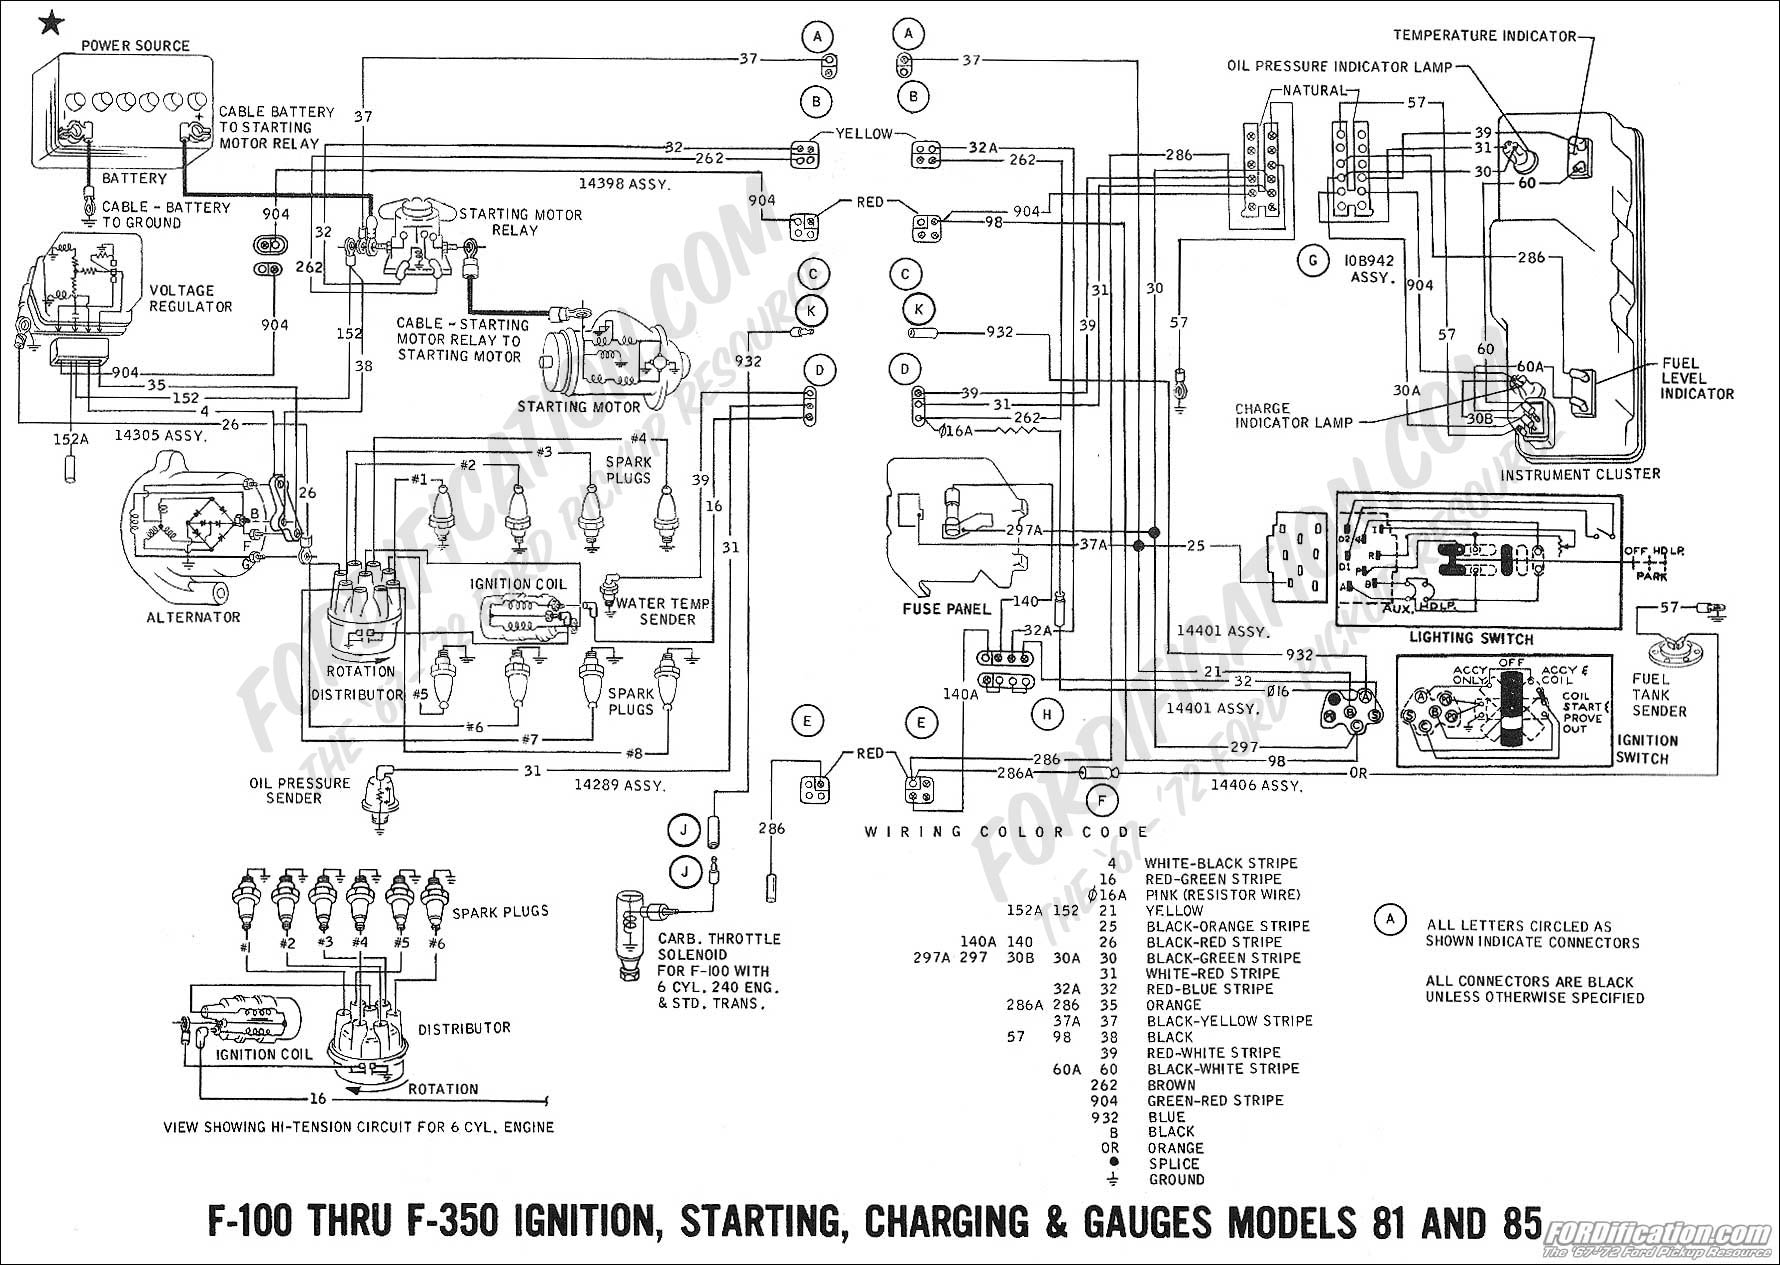 hight resolution of voltage regulator problems ford truck enthusiasts forums rh ford trucks com ford 801 wiring diagram ford